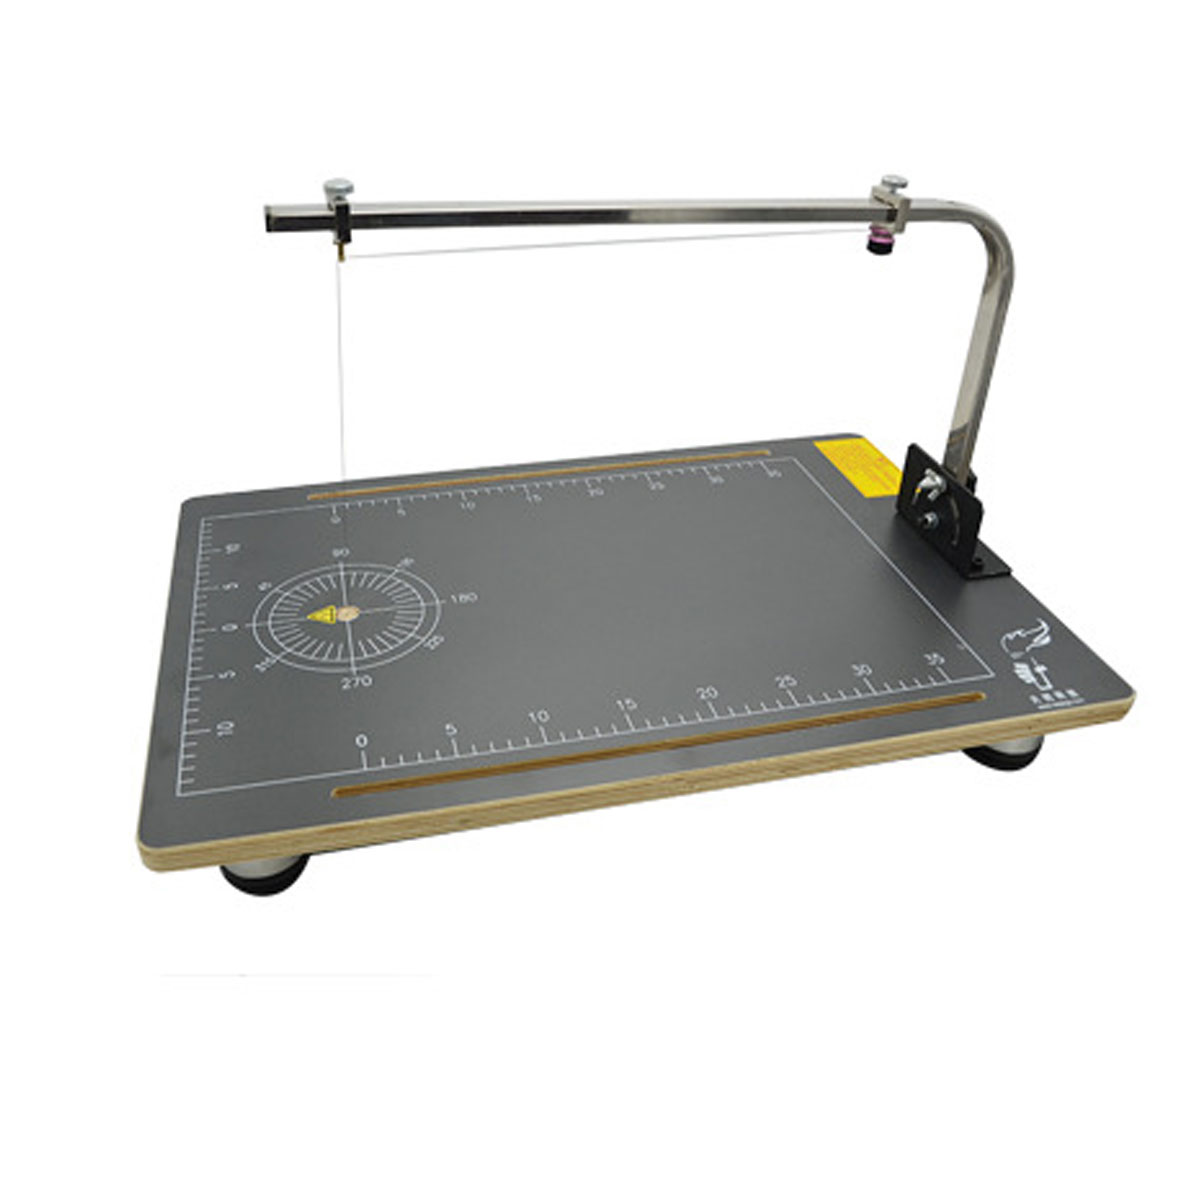 110V to 220V Board WAX Wire Foam Electric Styrofoam Cutter Machine Working Stand Table Tool